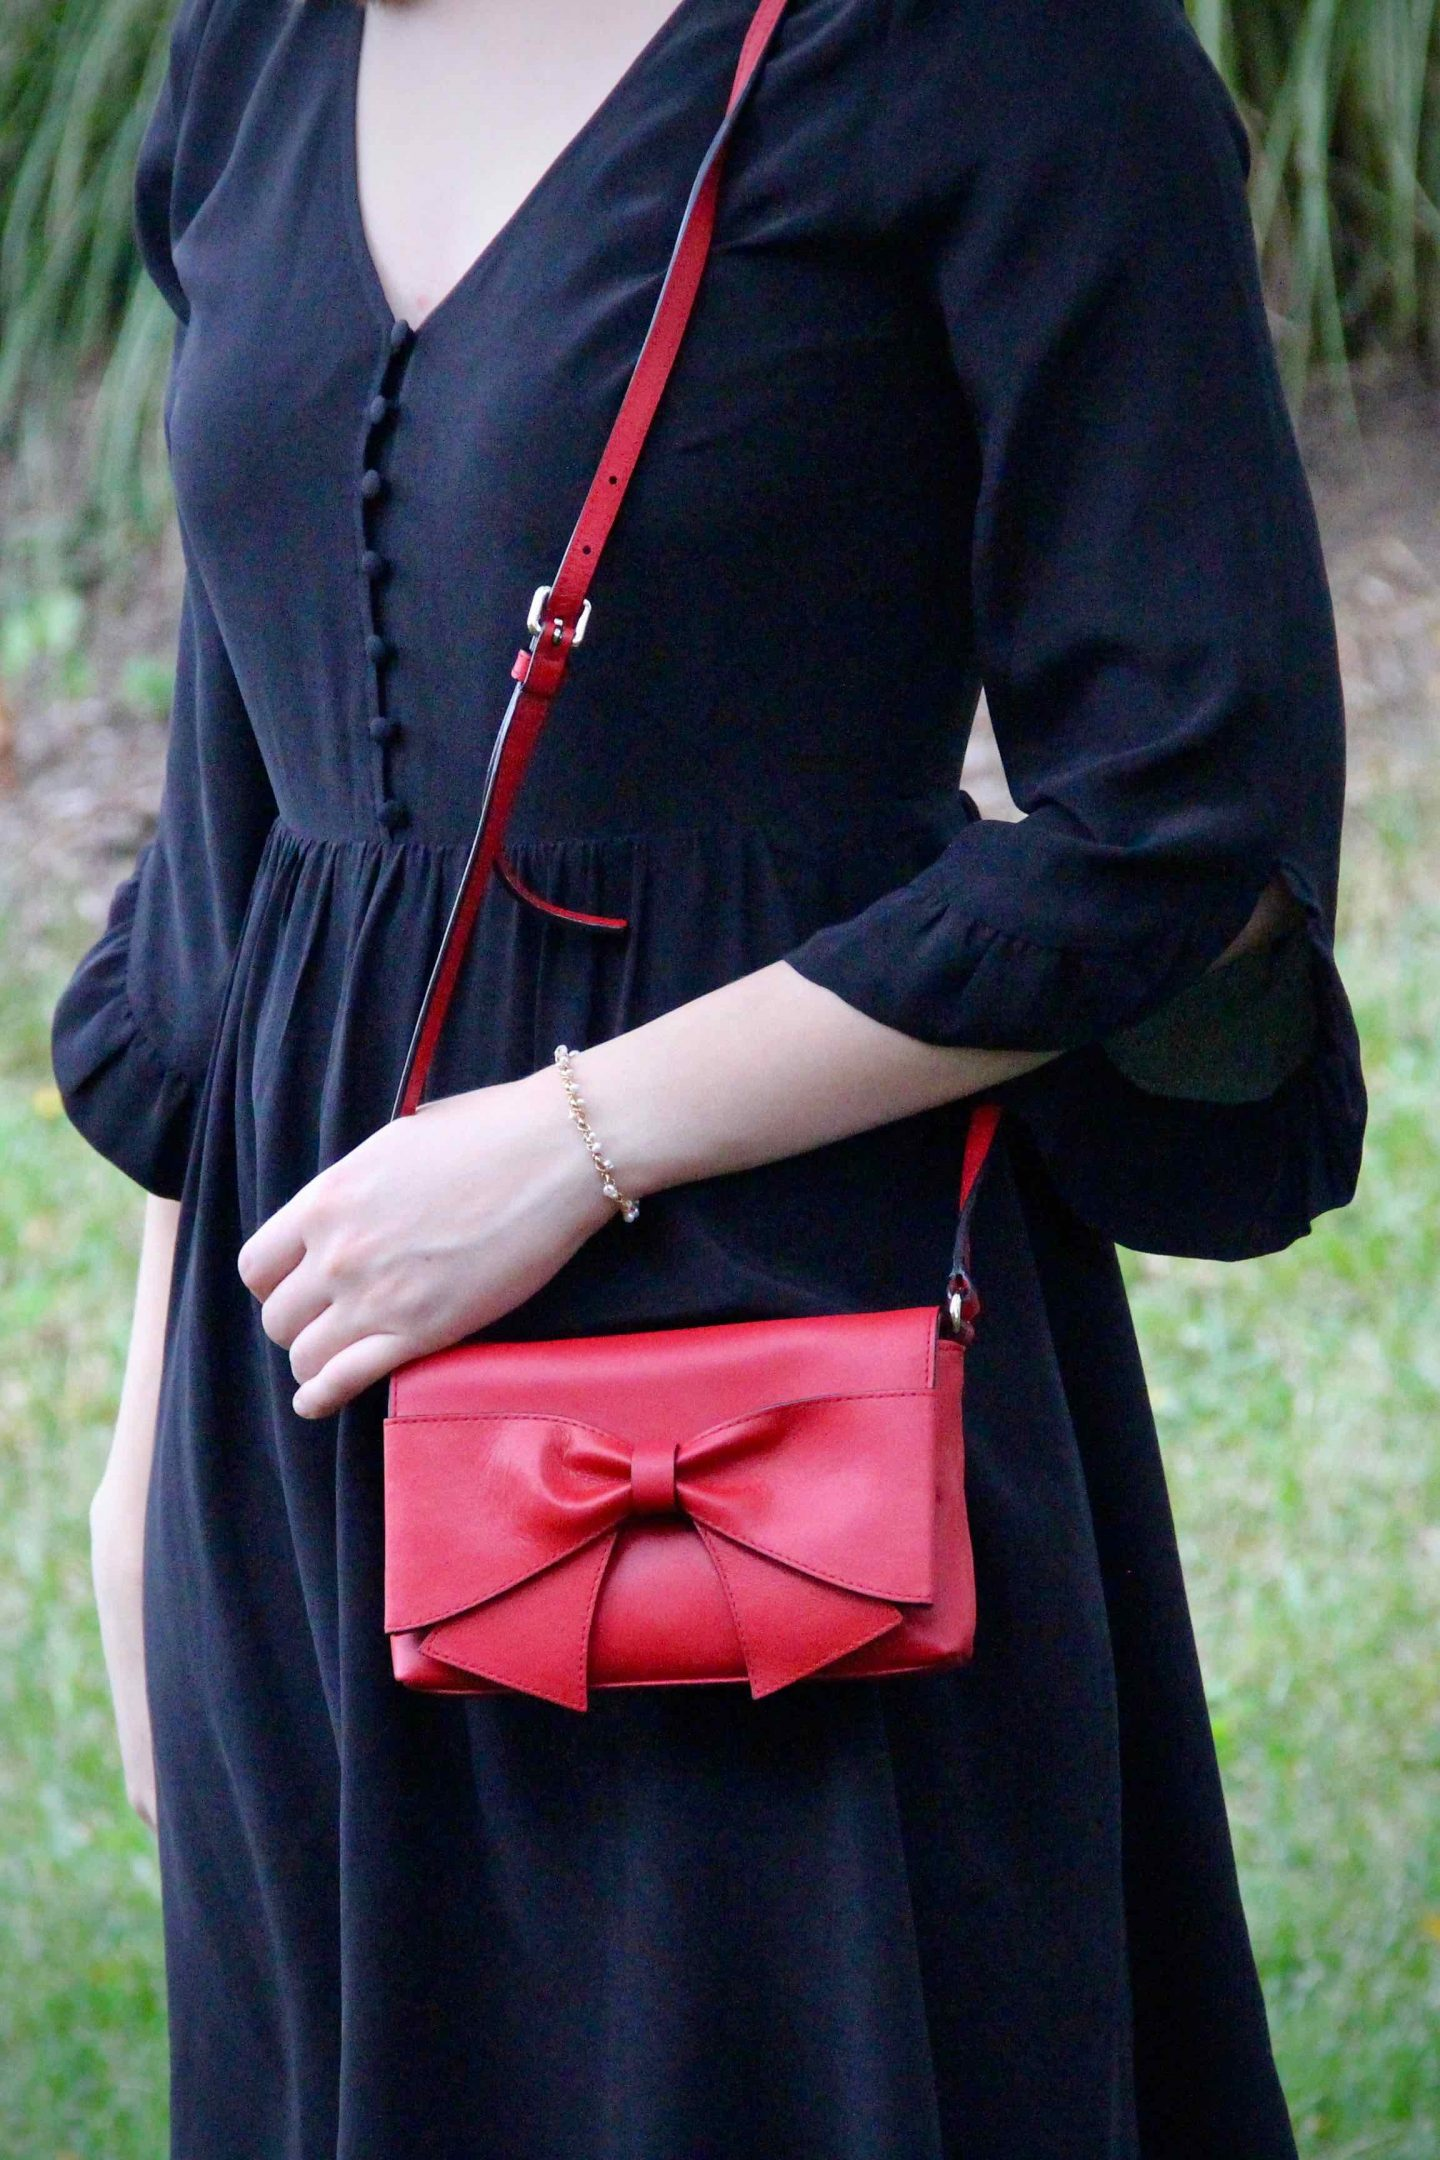 LBD for Date Night   Fall Capsule Wardrobe   The Spectacular Adventurer